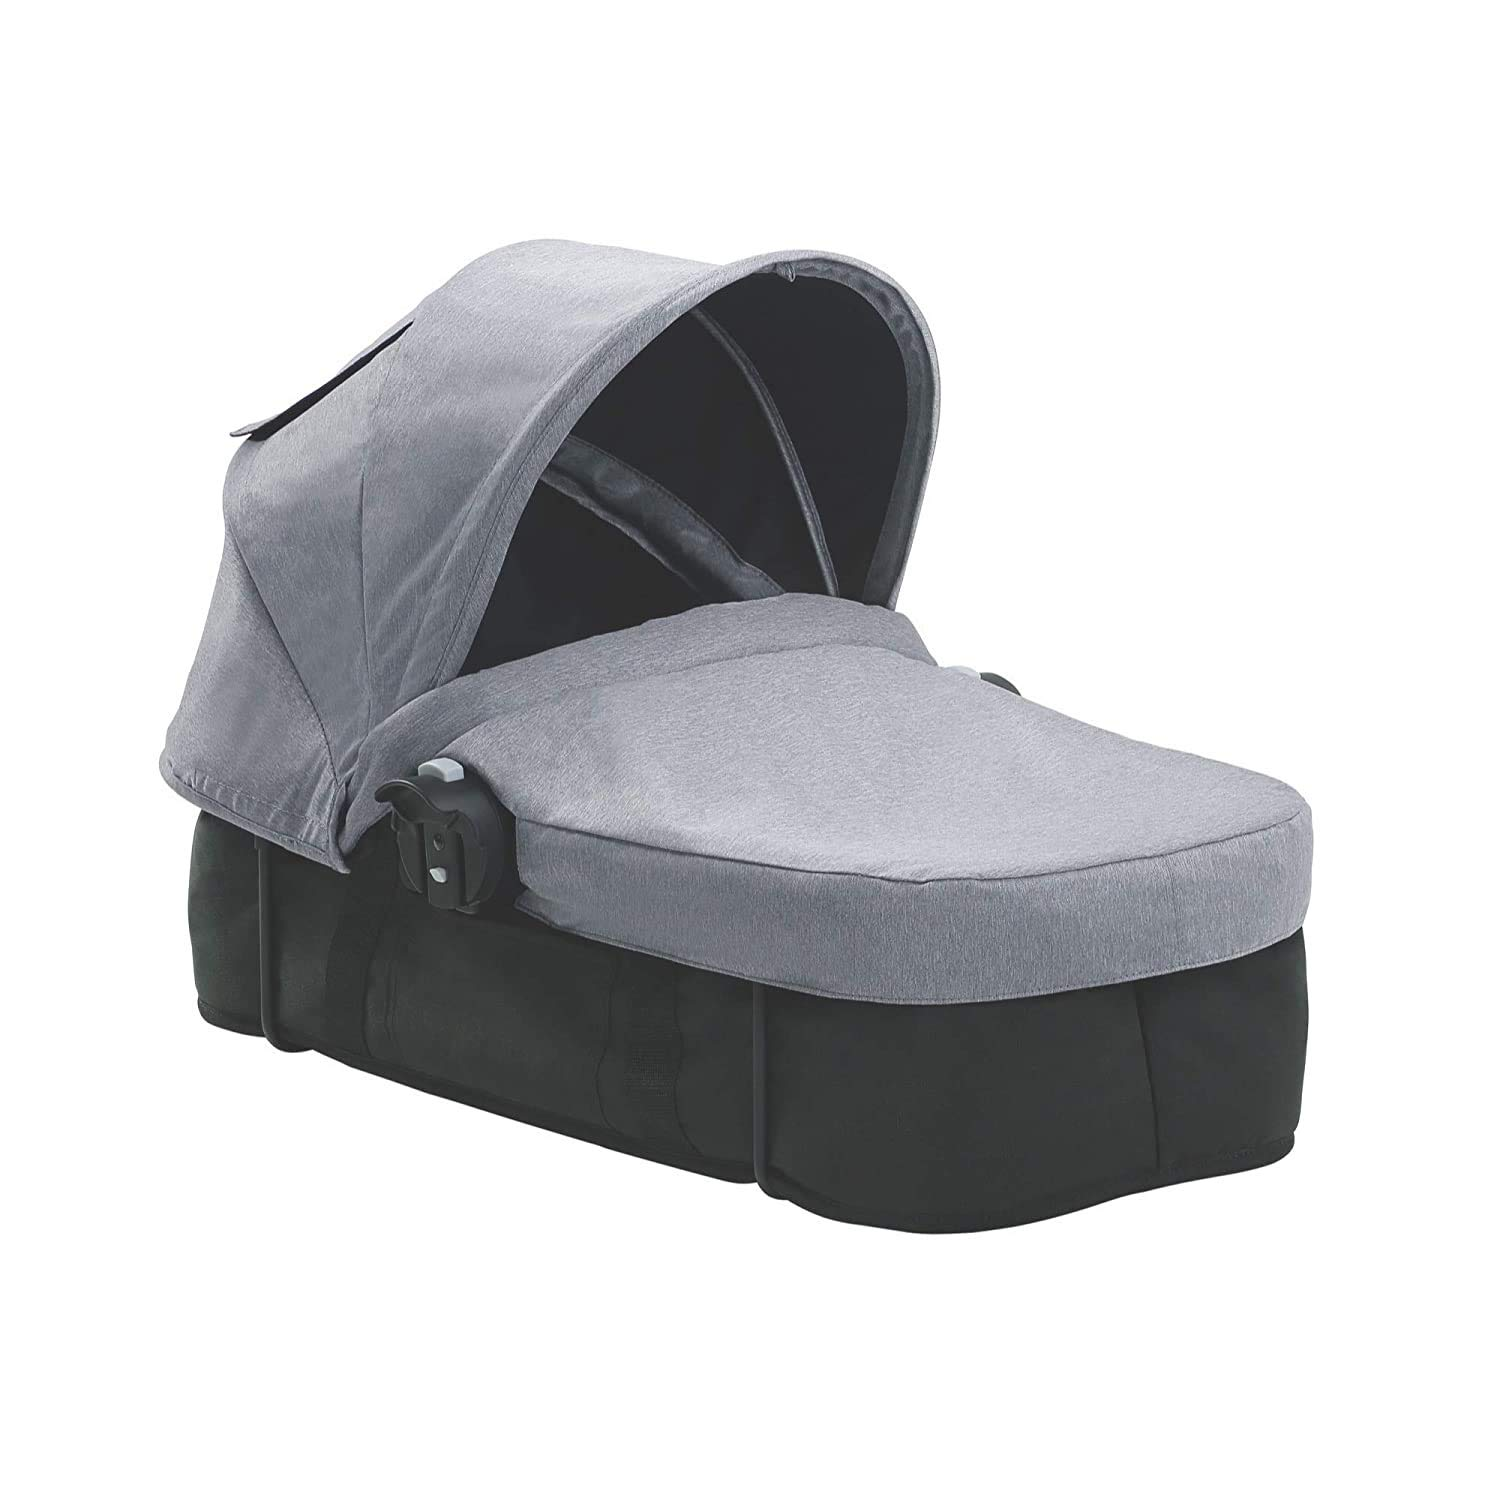 Baby Jogger City Select Pram Kit, Slate